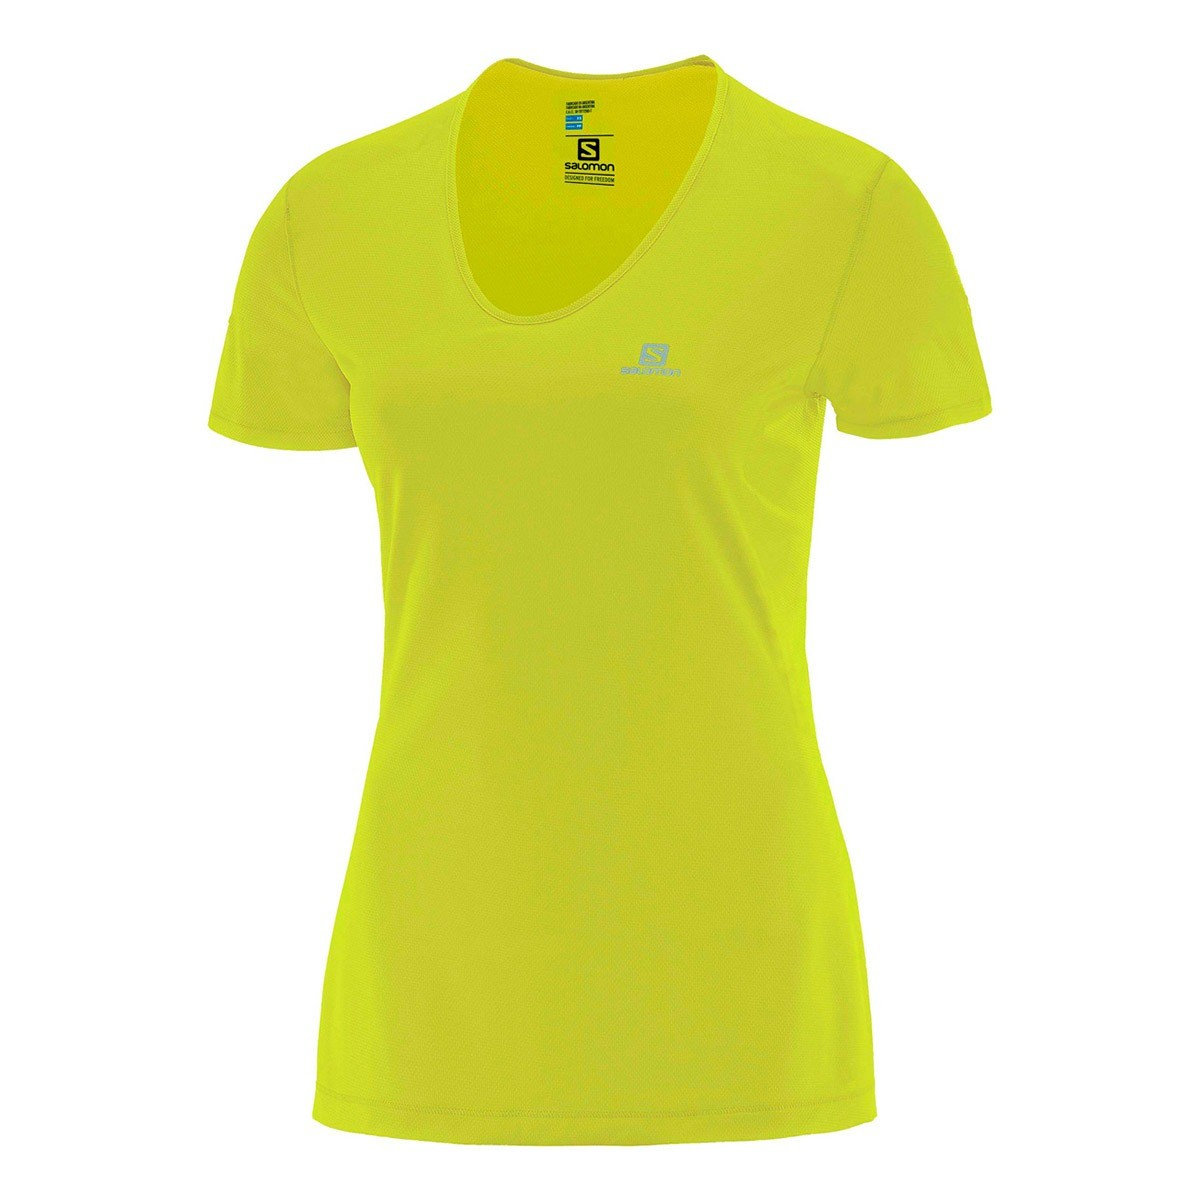 CAMISETA SALOMON TRAINING IV F